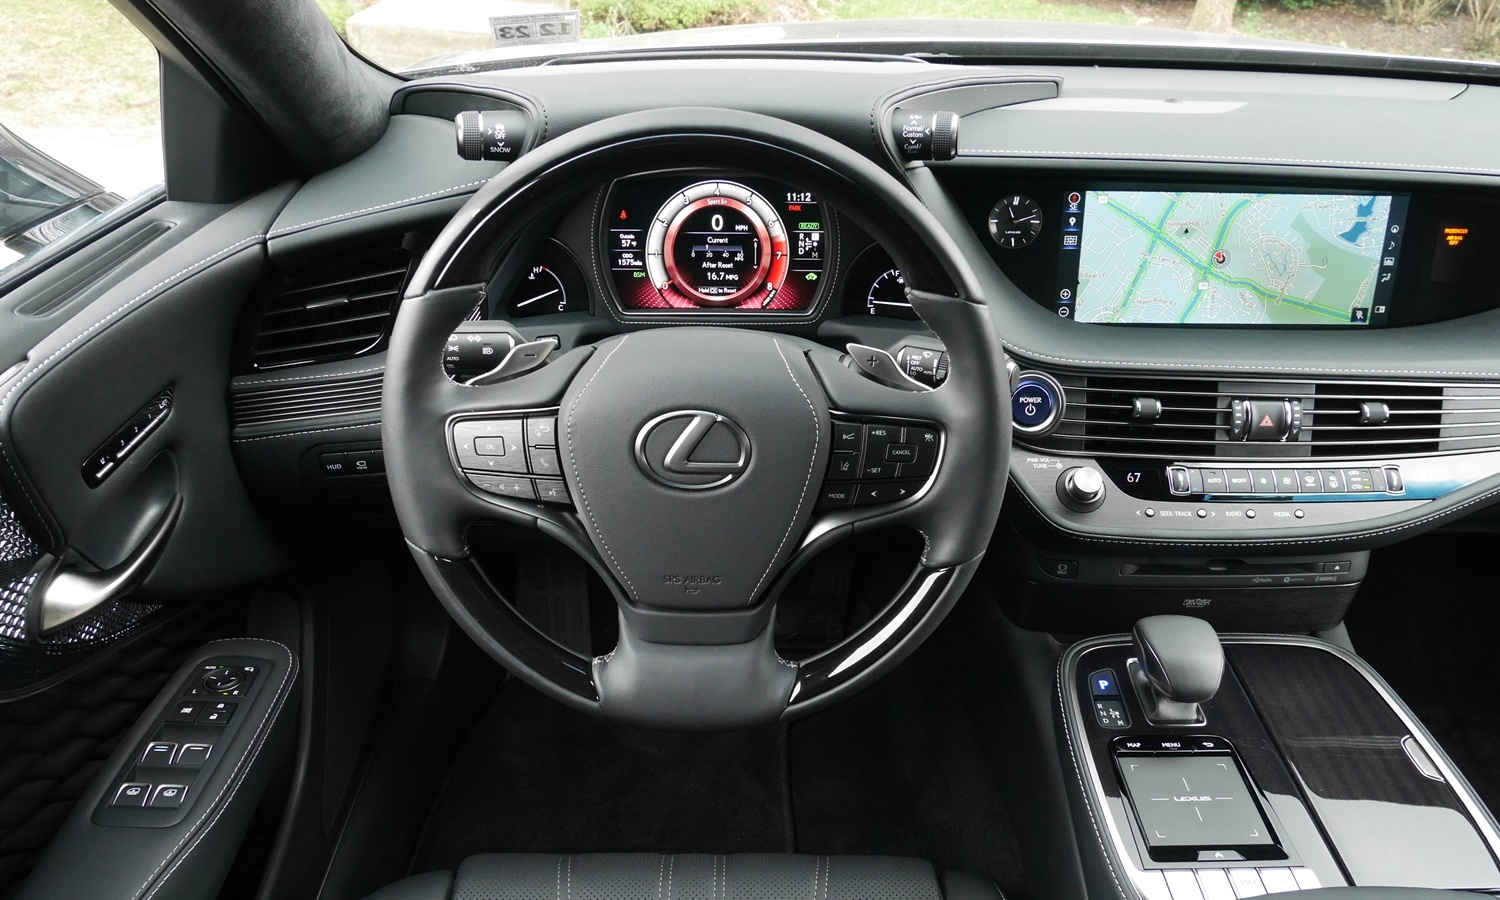 Lexus LS Photos: Lexus LS 500h instrument panel